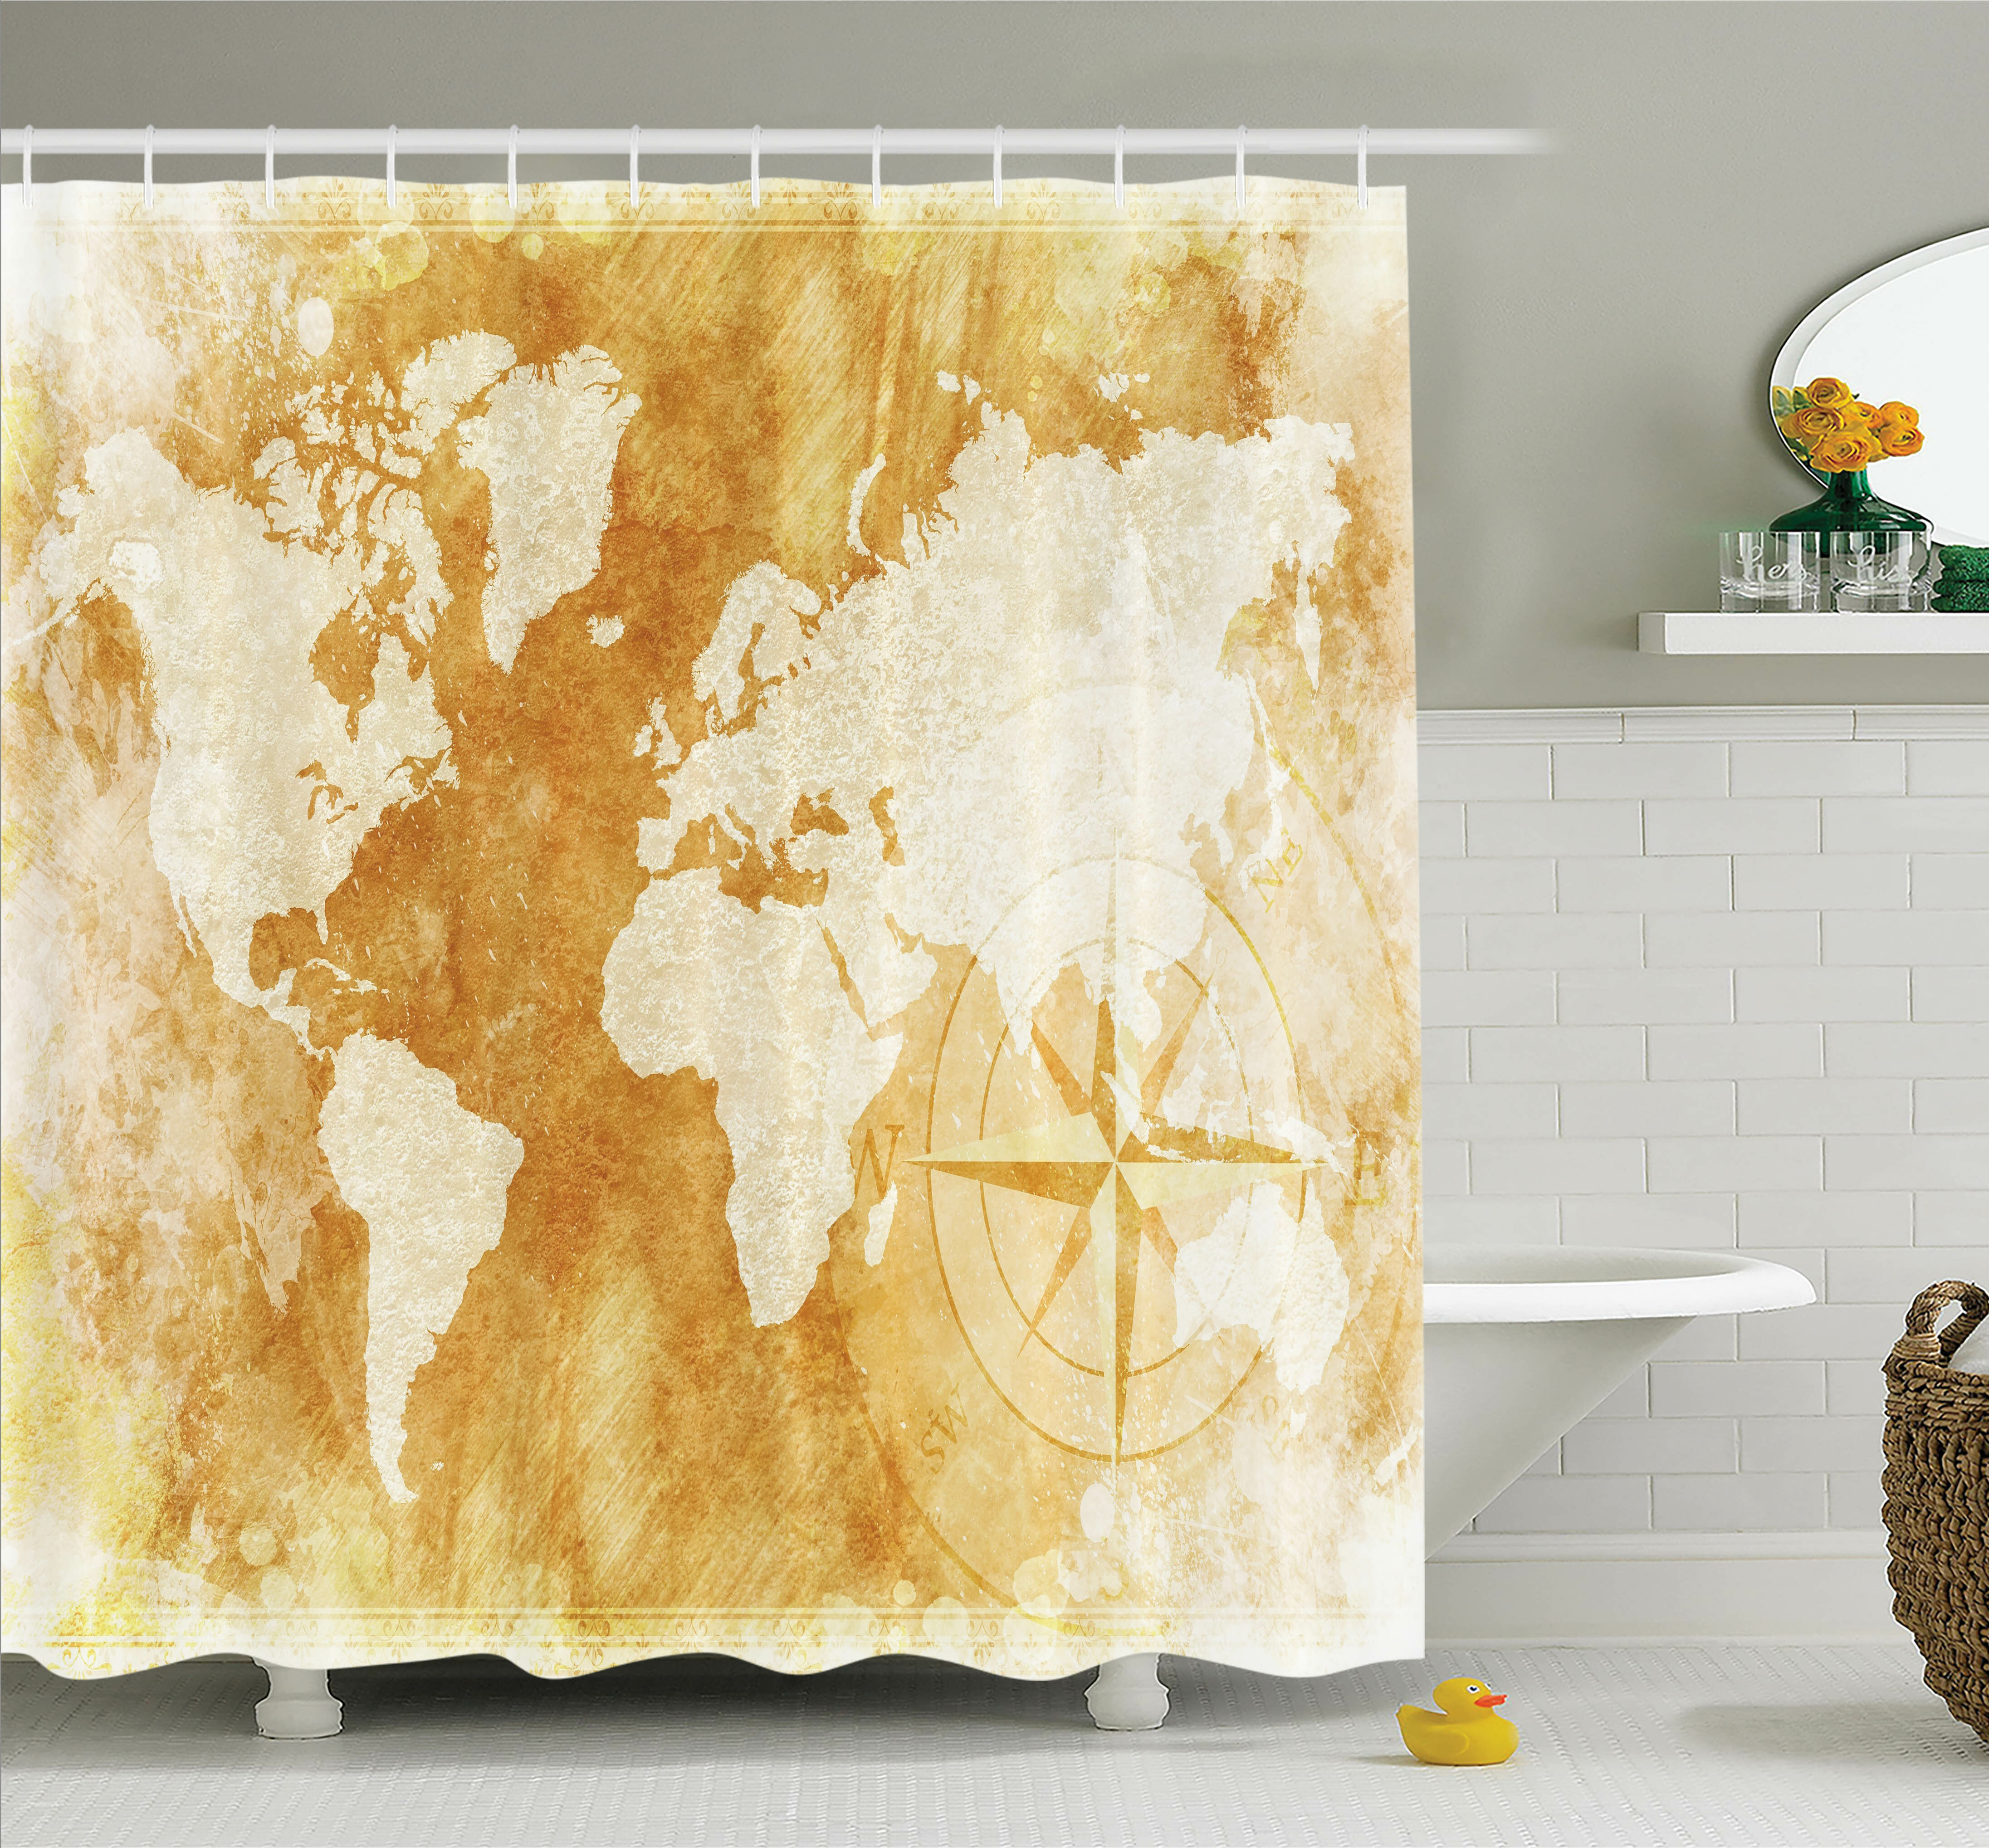 Ambesonne Old Fashioned World Map Shower Curtain Set